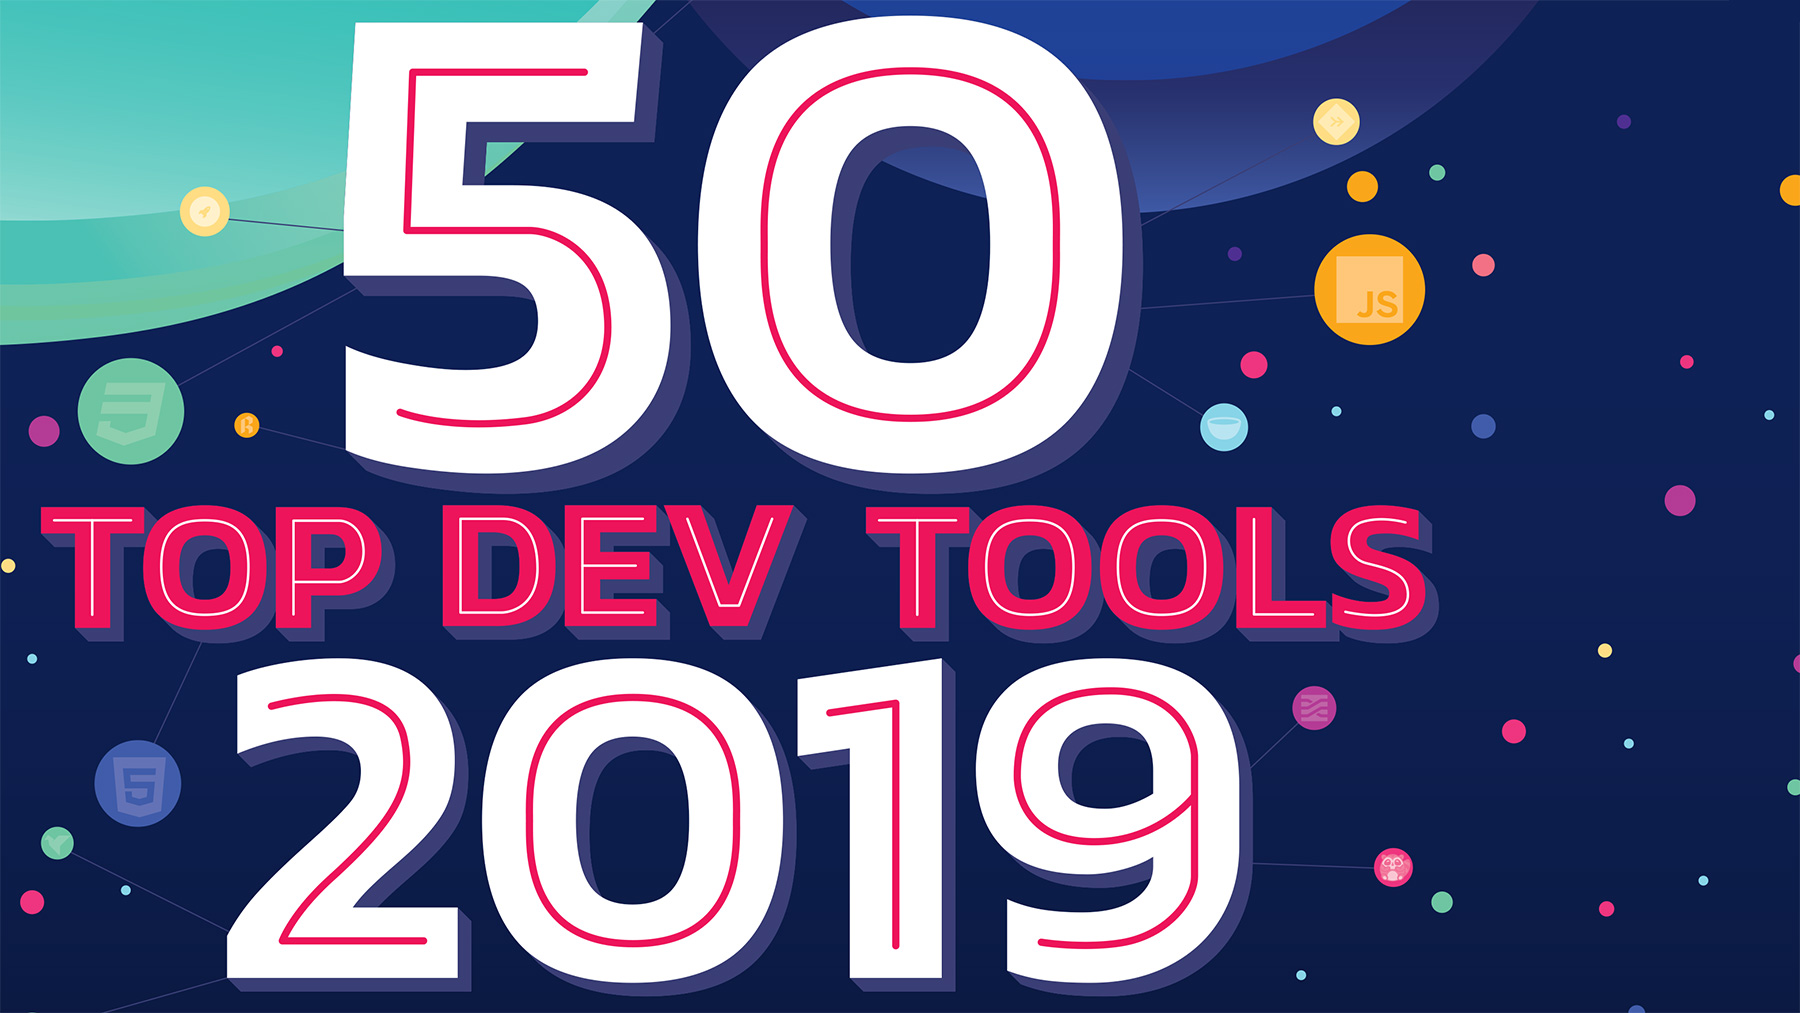 50 awesome new tools for developers in 2019 | Creative Bloq